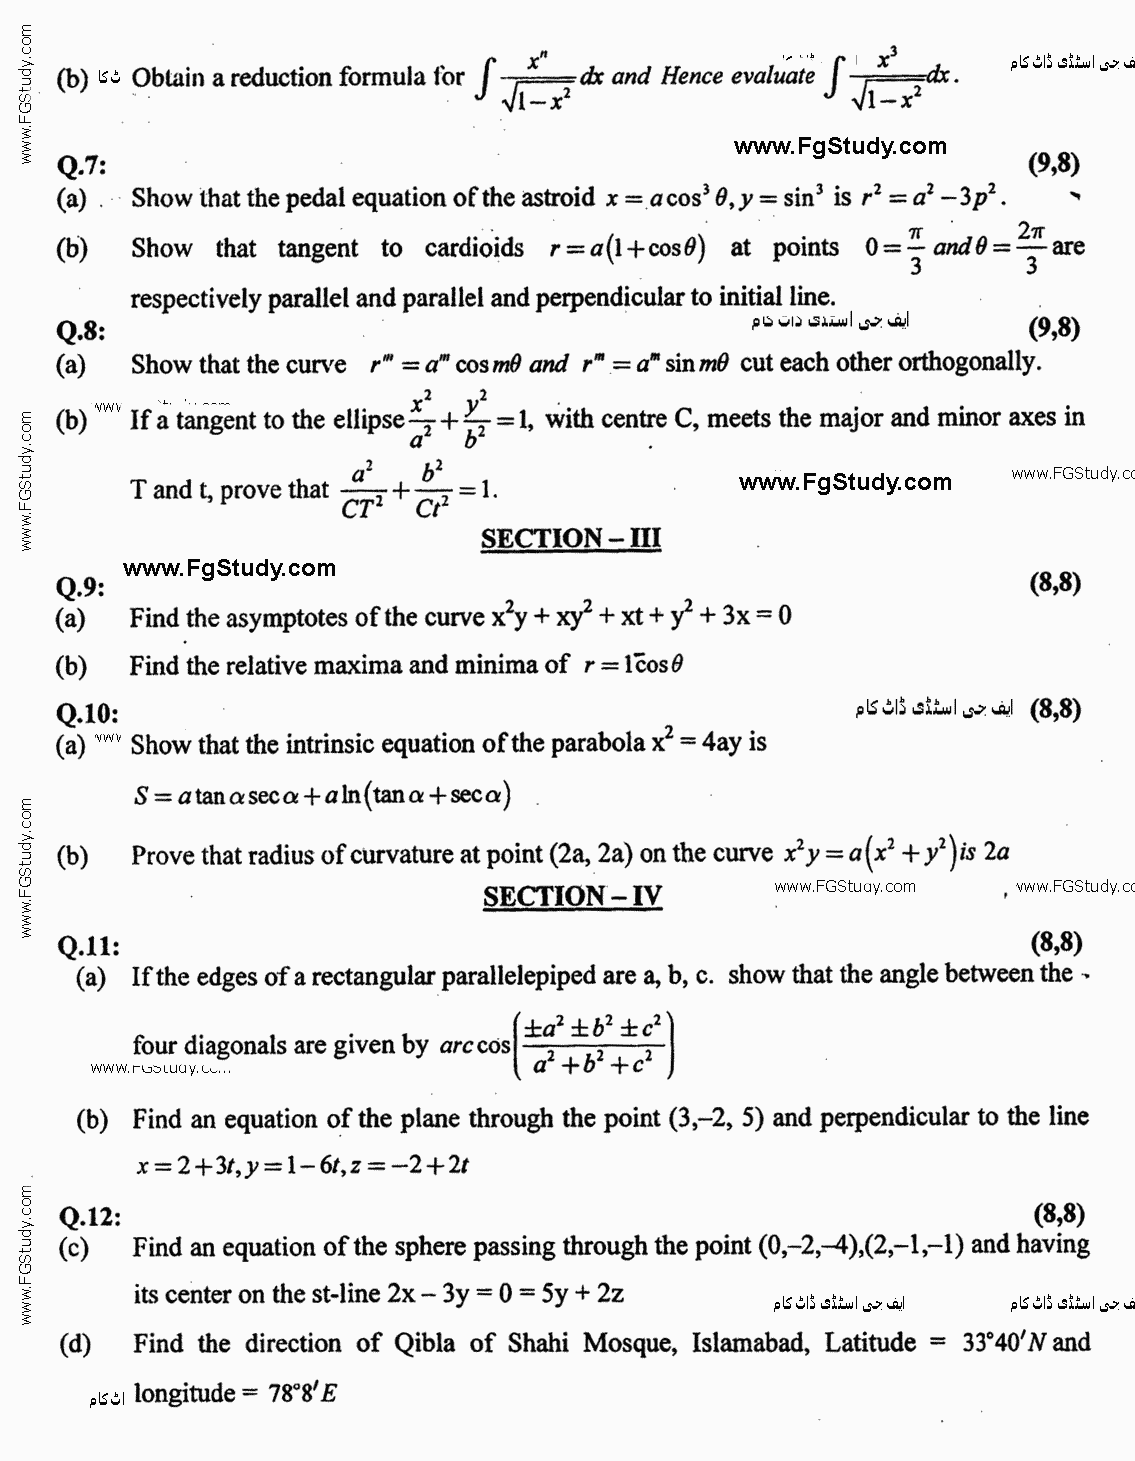 Mathematics A Calculus And Analytical Geometry BA Part 1 Past Papers 2018 images 2